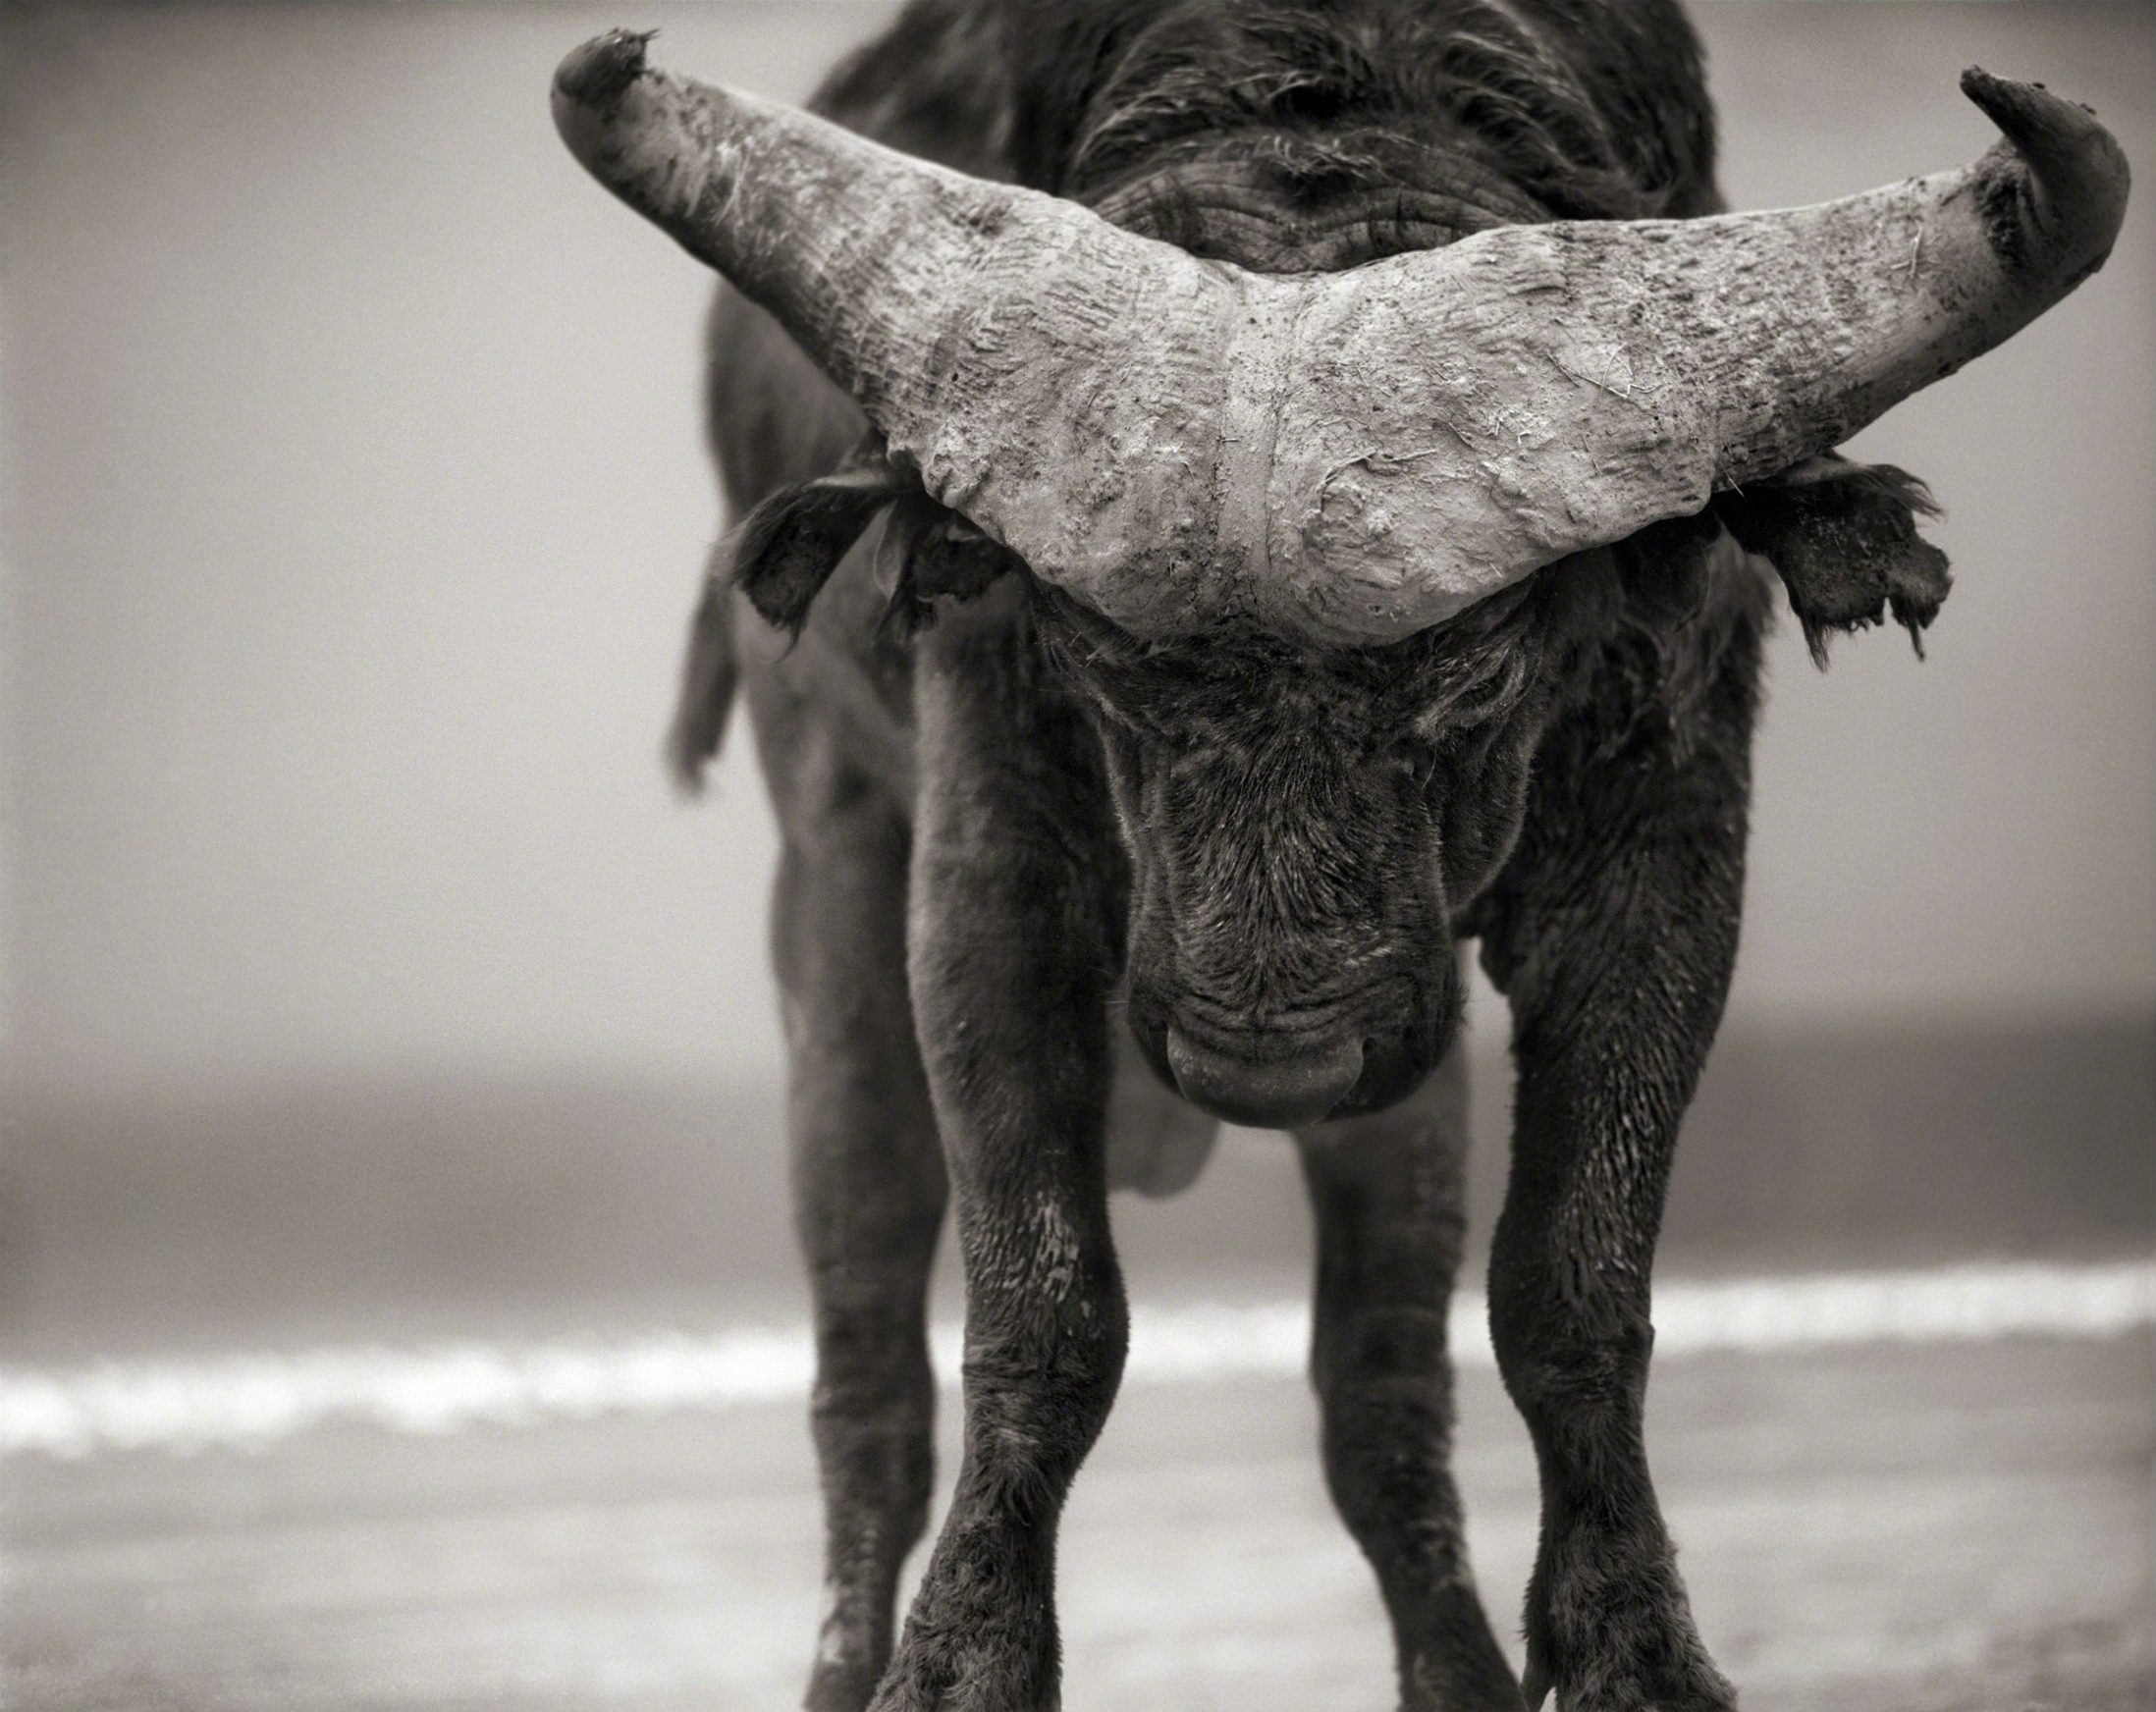 Buffalo with Lowered Head, Amboseli